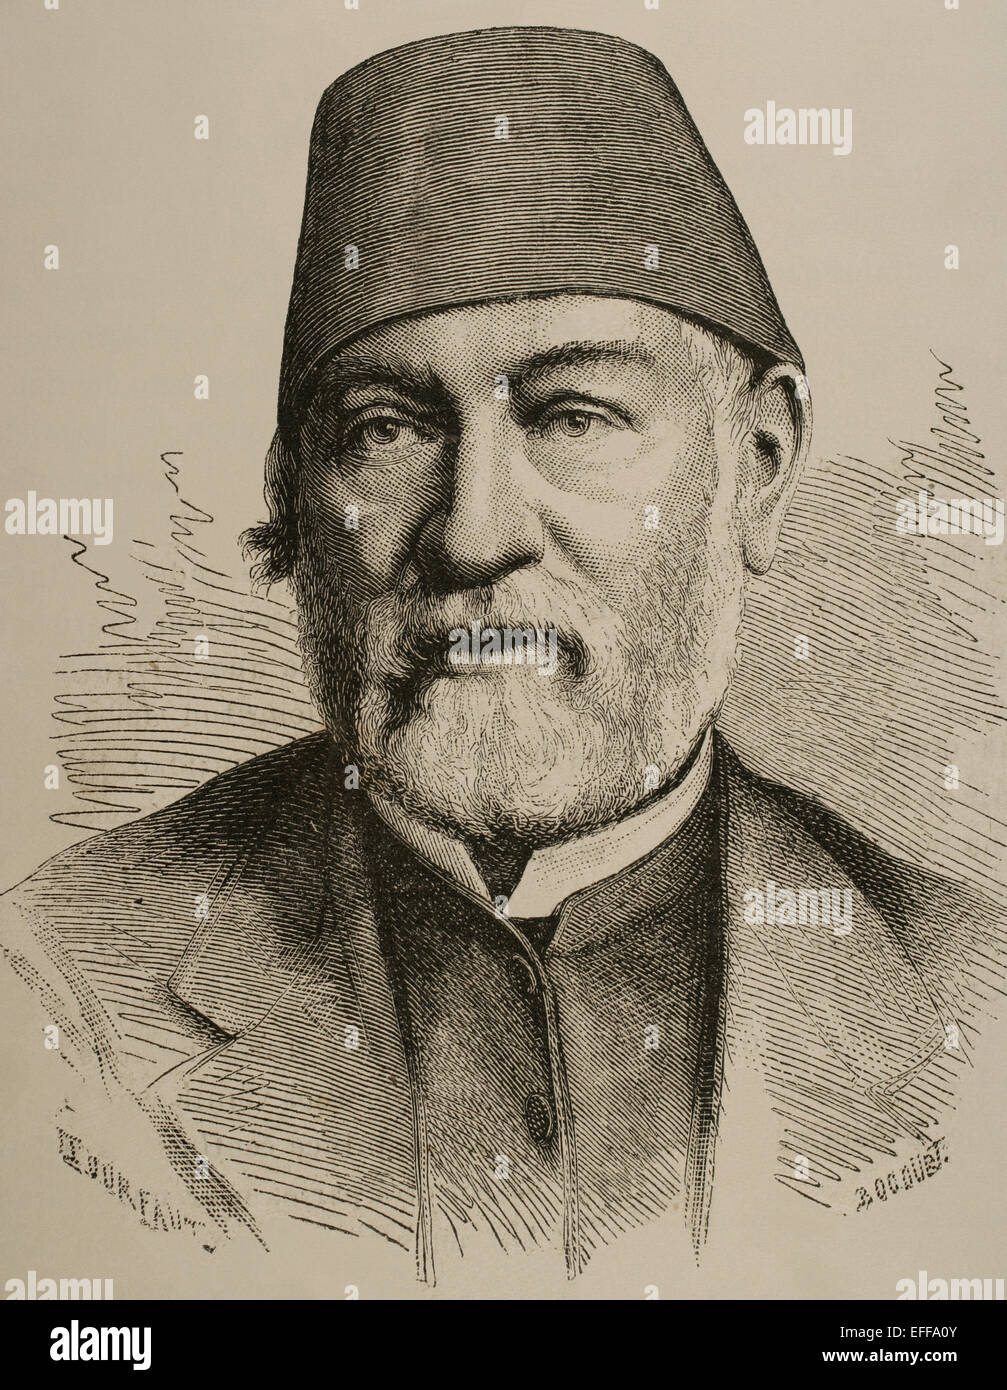 Auguste Mariette (1821-1881). French scholar, archaeologist and Egyptologist. Portrait. Engraving. Stock Photo